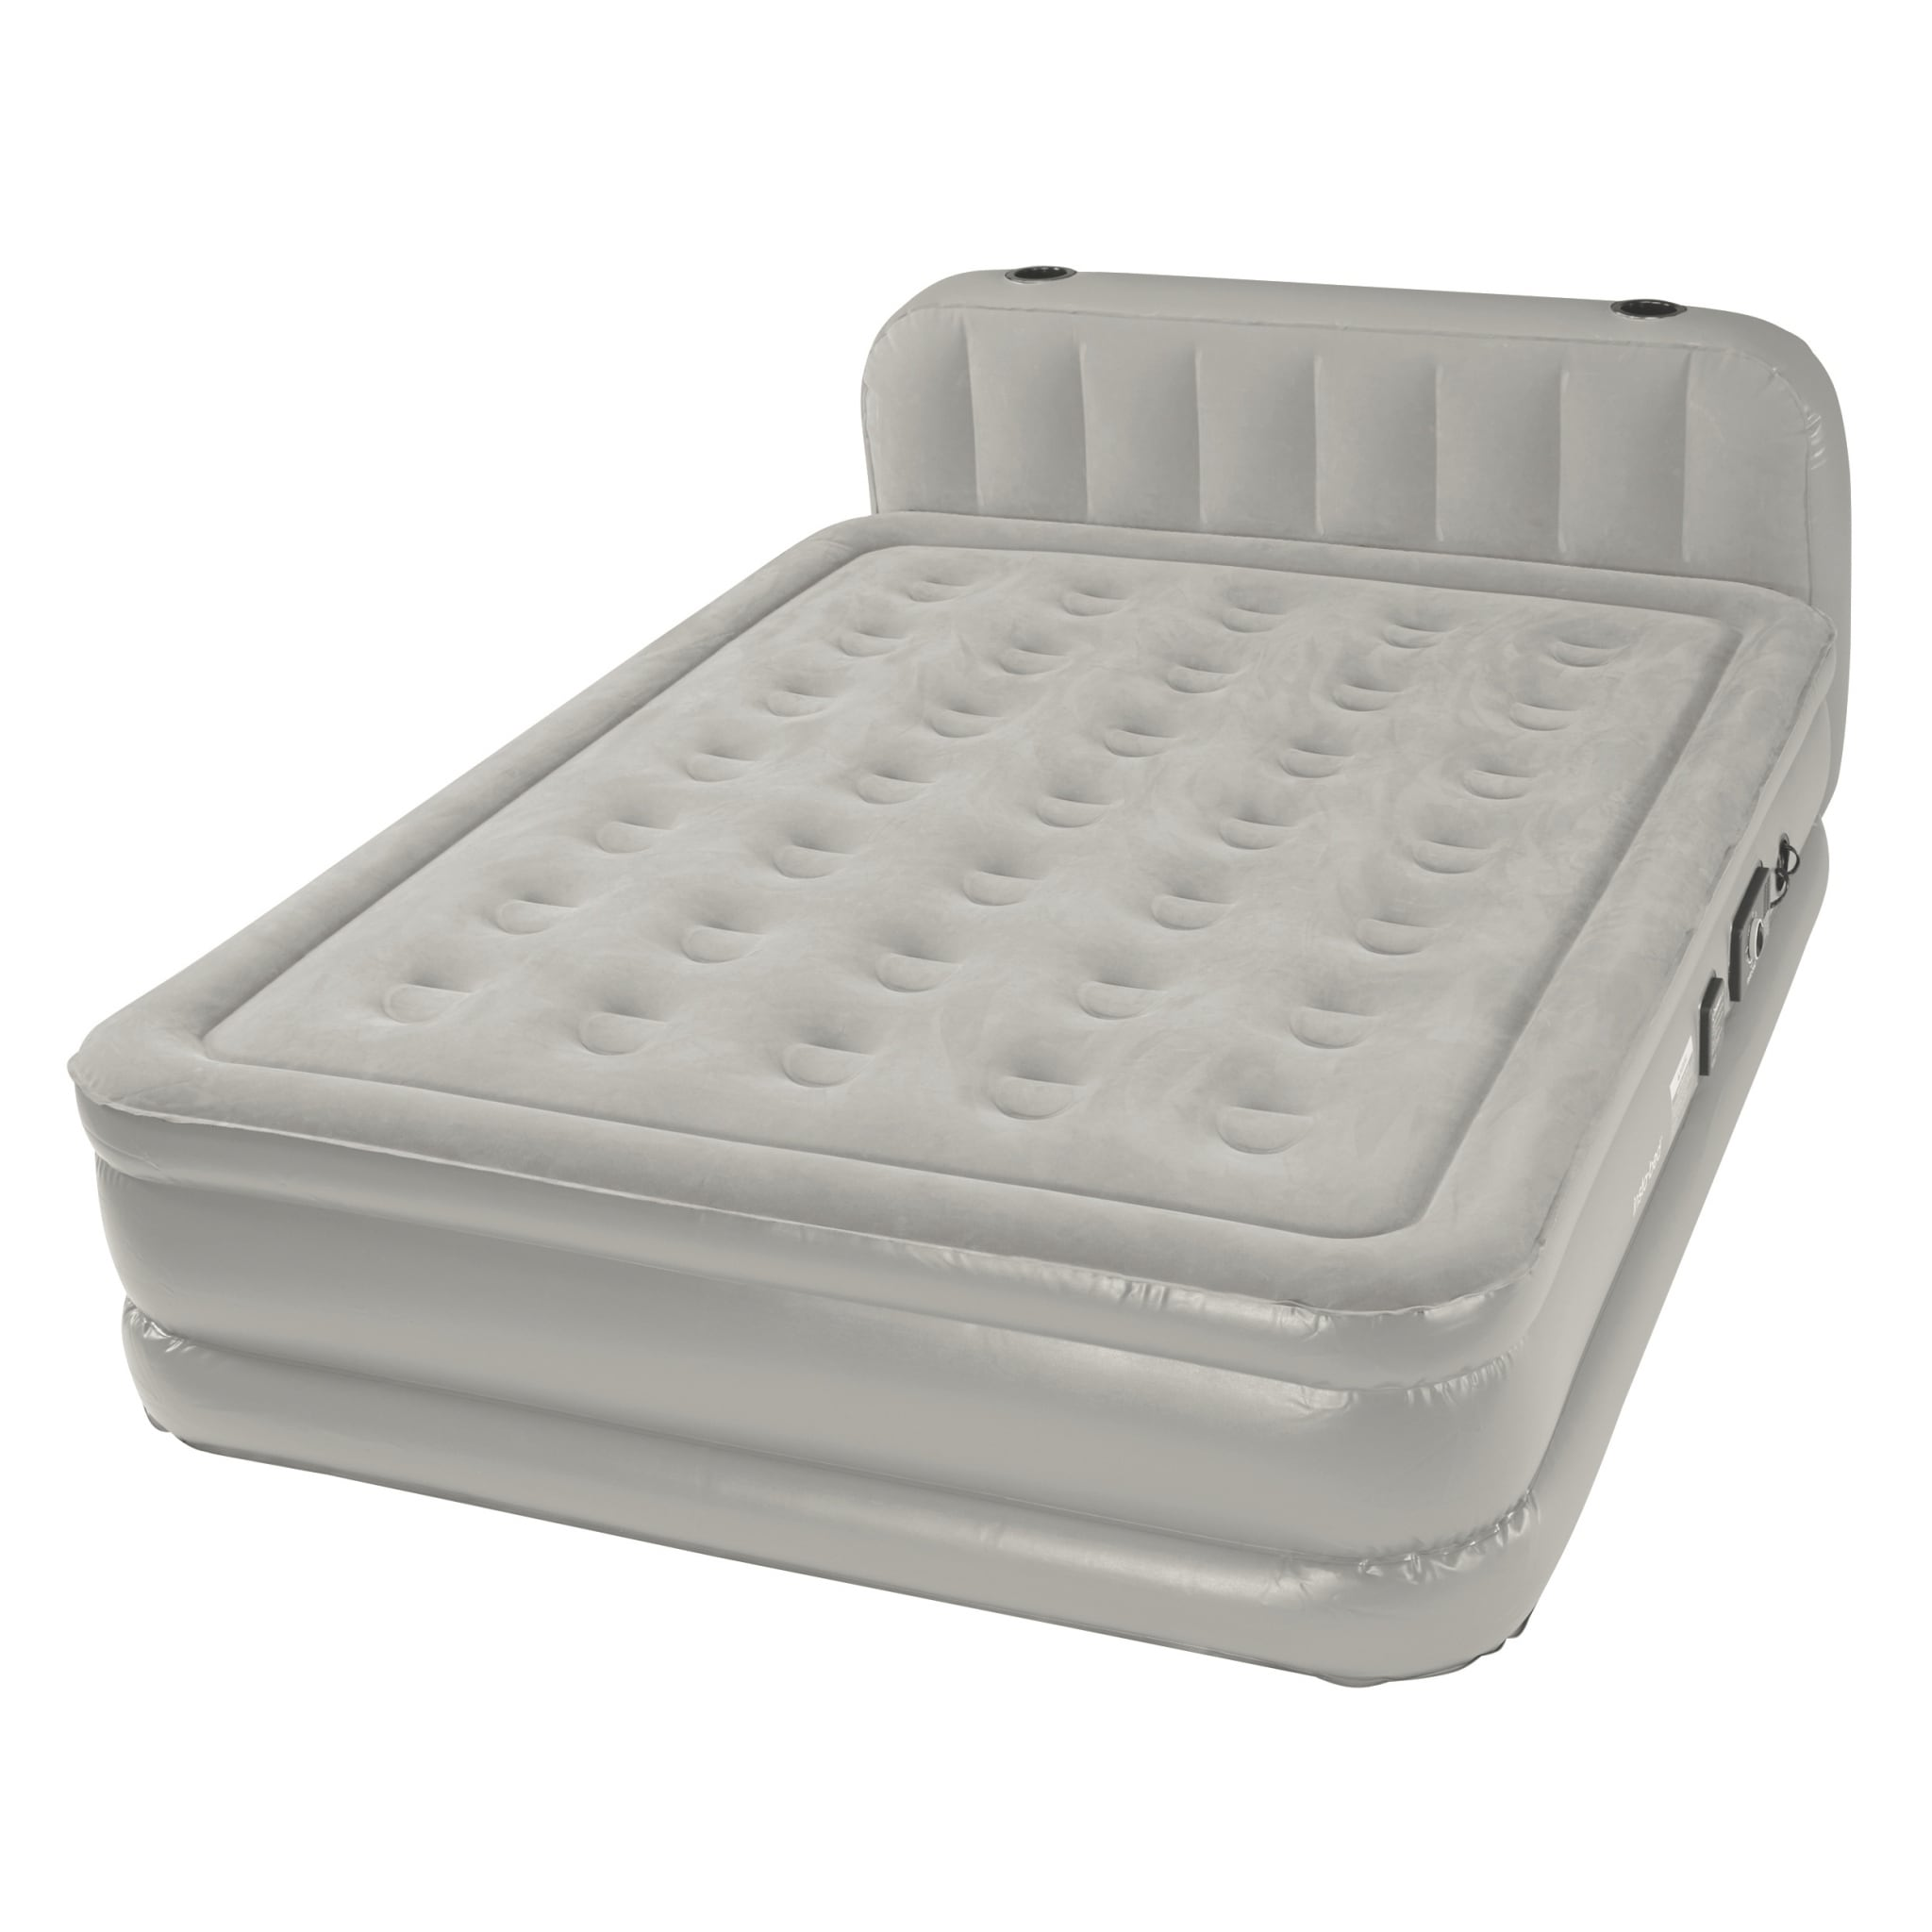 blogbeen pillow use how intex mattress ojsnrrz make pumps raised pack air mattresses rest to deluxe of twin luxury